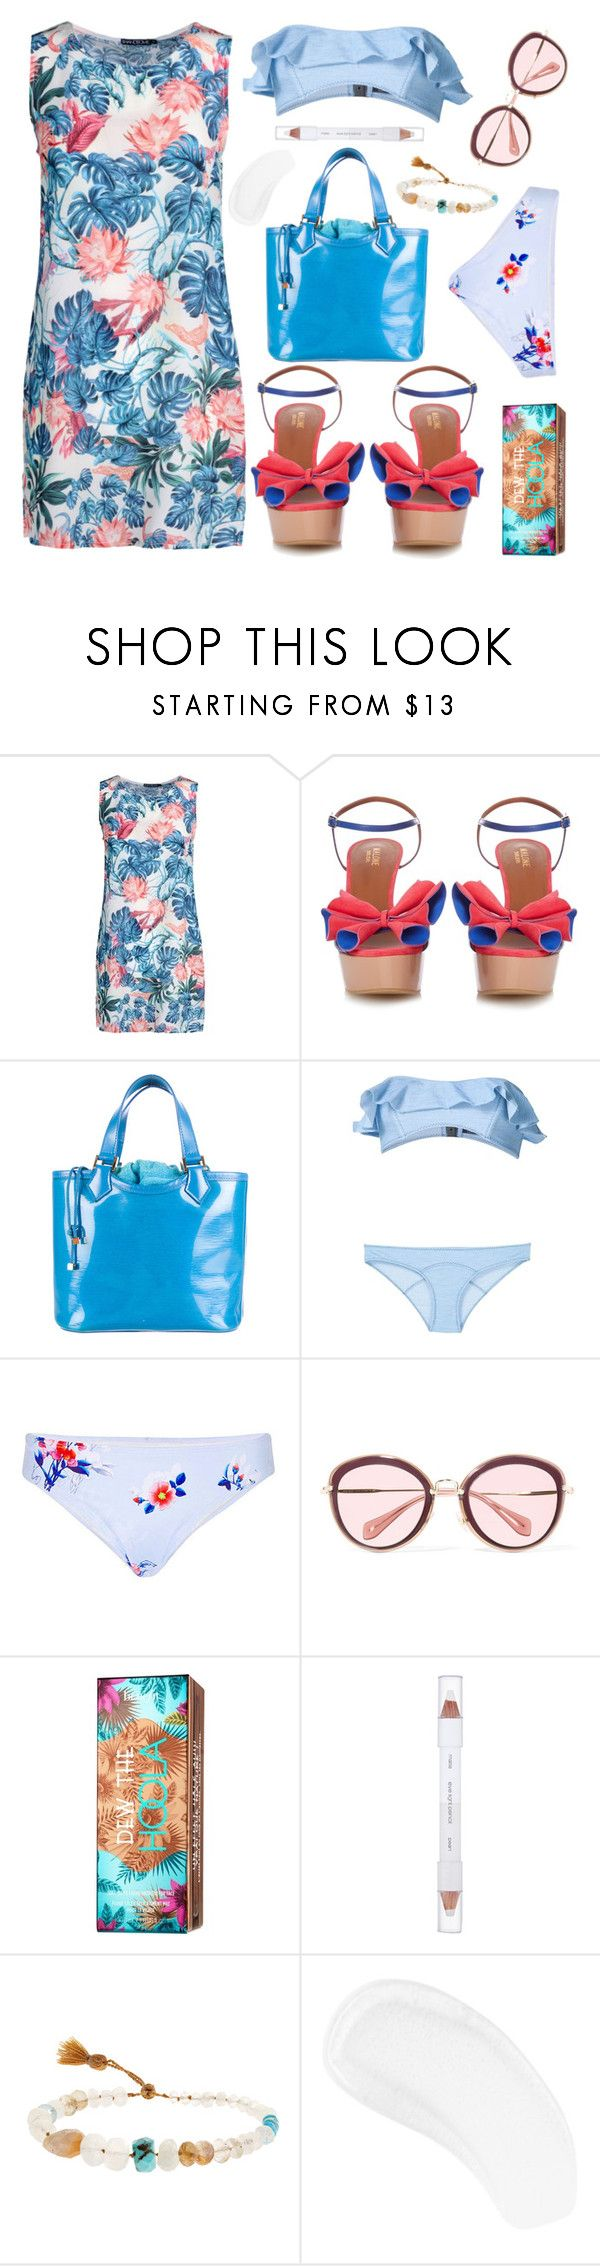 """A day by the sea.... ( Top Set)"" by sue-mes ❤ liked on Polyvore featuring We Are Handsome, Malone Souliers, Louis Vuitton, Lisa Marie Fernandez, Cynthia Rowley, Miu Miu, Hoola, shu uemura, Lena Skadegard and Temptu"